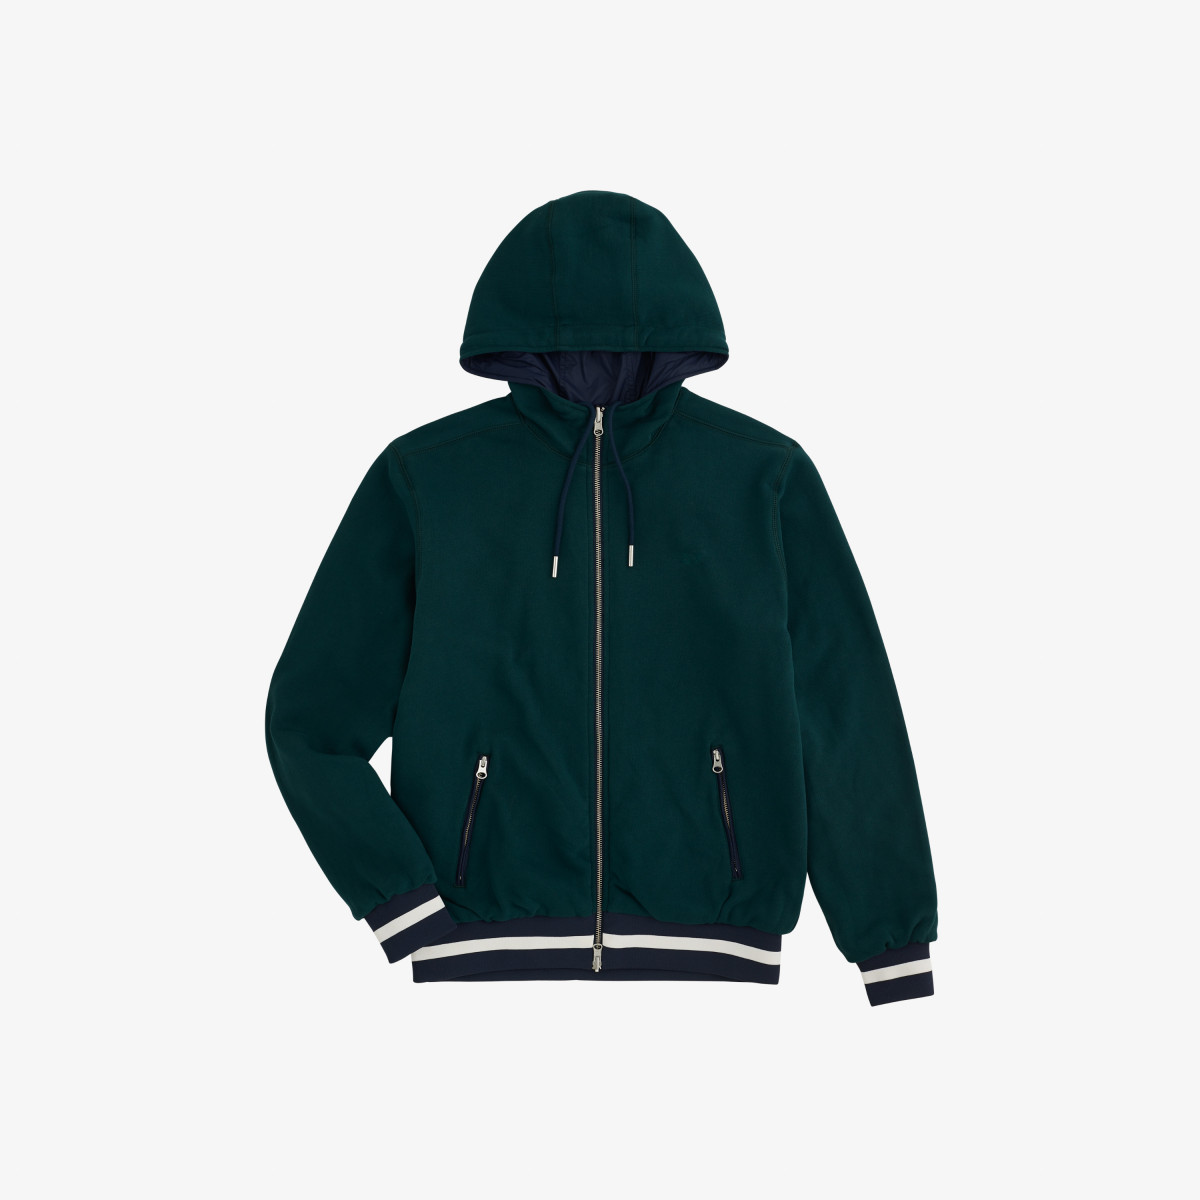 RAIN JACKET SOLID NAVY BLUE